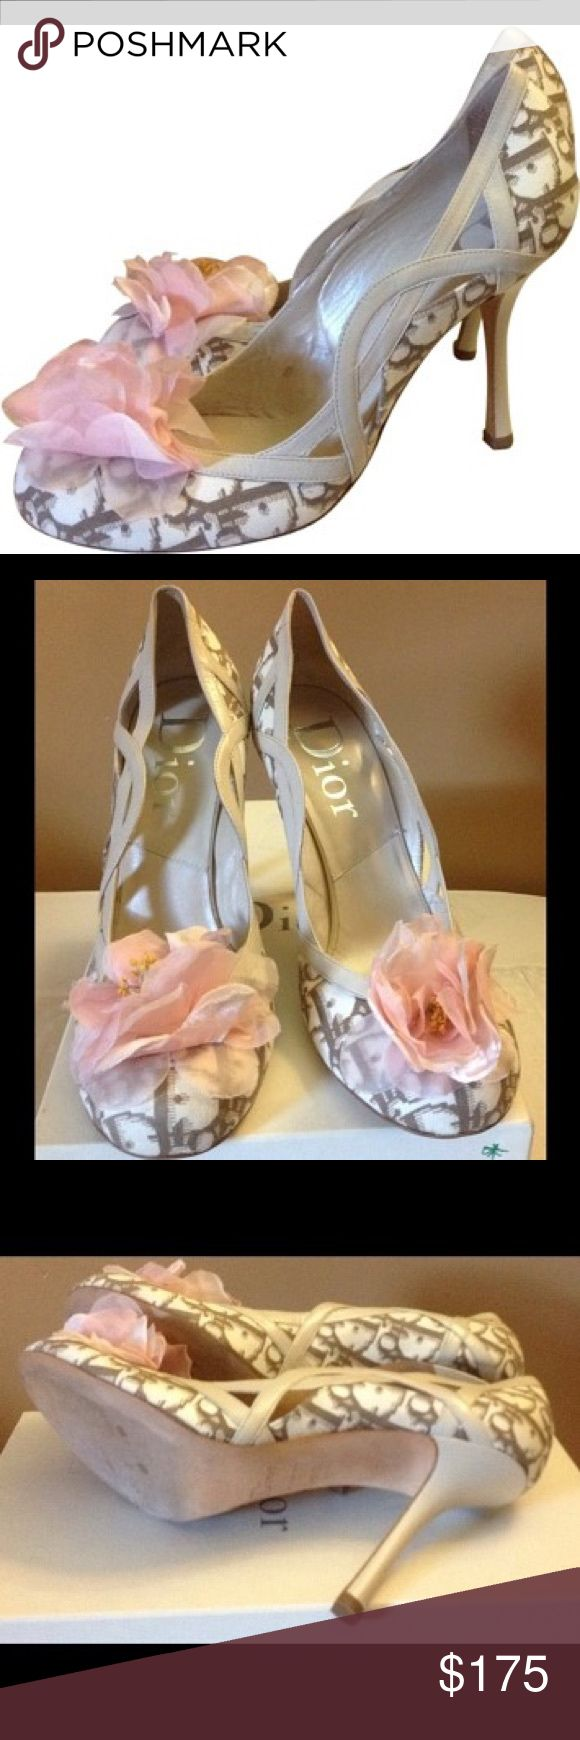 Sexy Dior flower Pumps sale 3 days only was $175 Excellent condition. Dior flower pumps Dior Shoes Heels